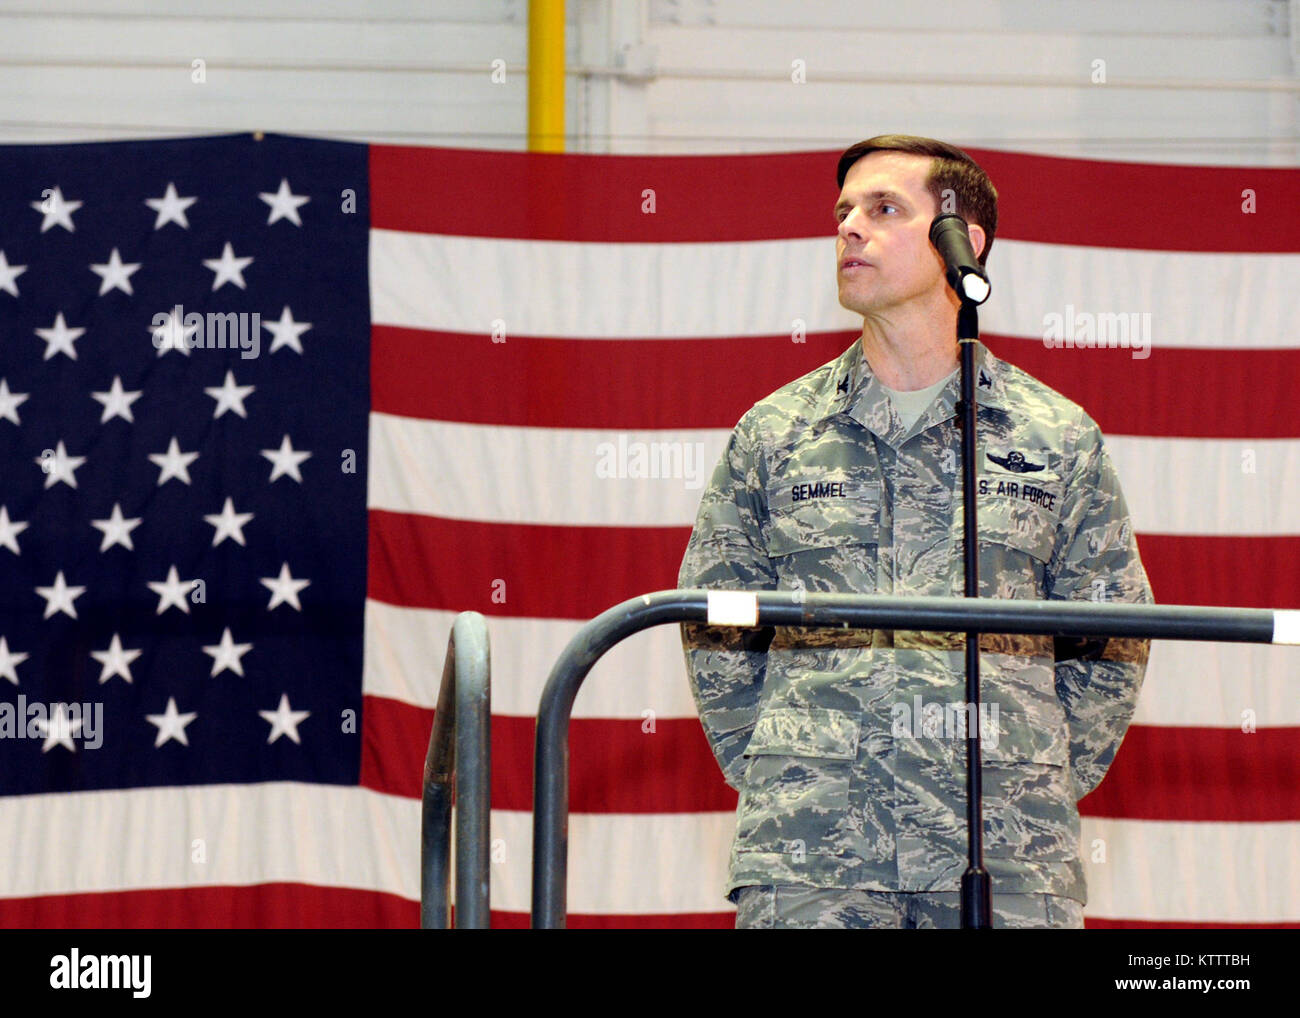 U.S. Air Force Col. Greg A. Semmel addresses the 174th Fighter Wing members as the newly selected 174th Fighter - Stock Image